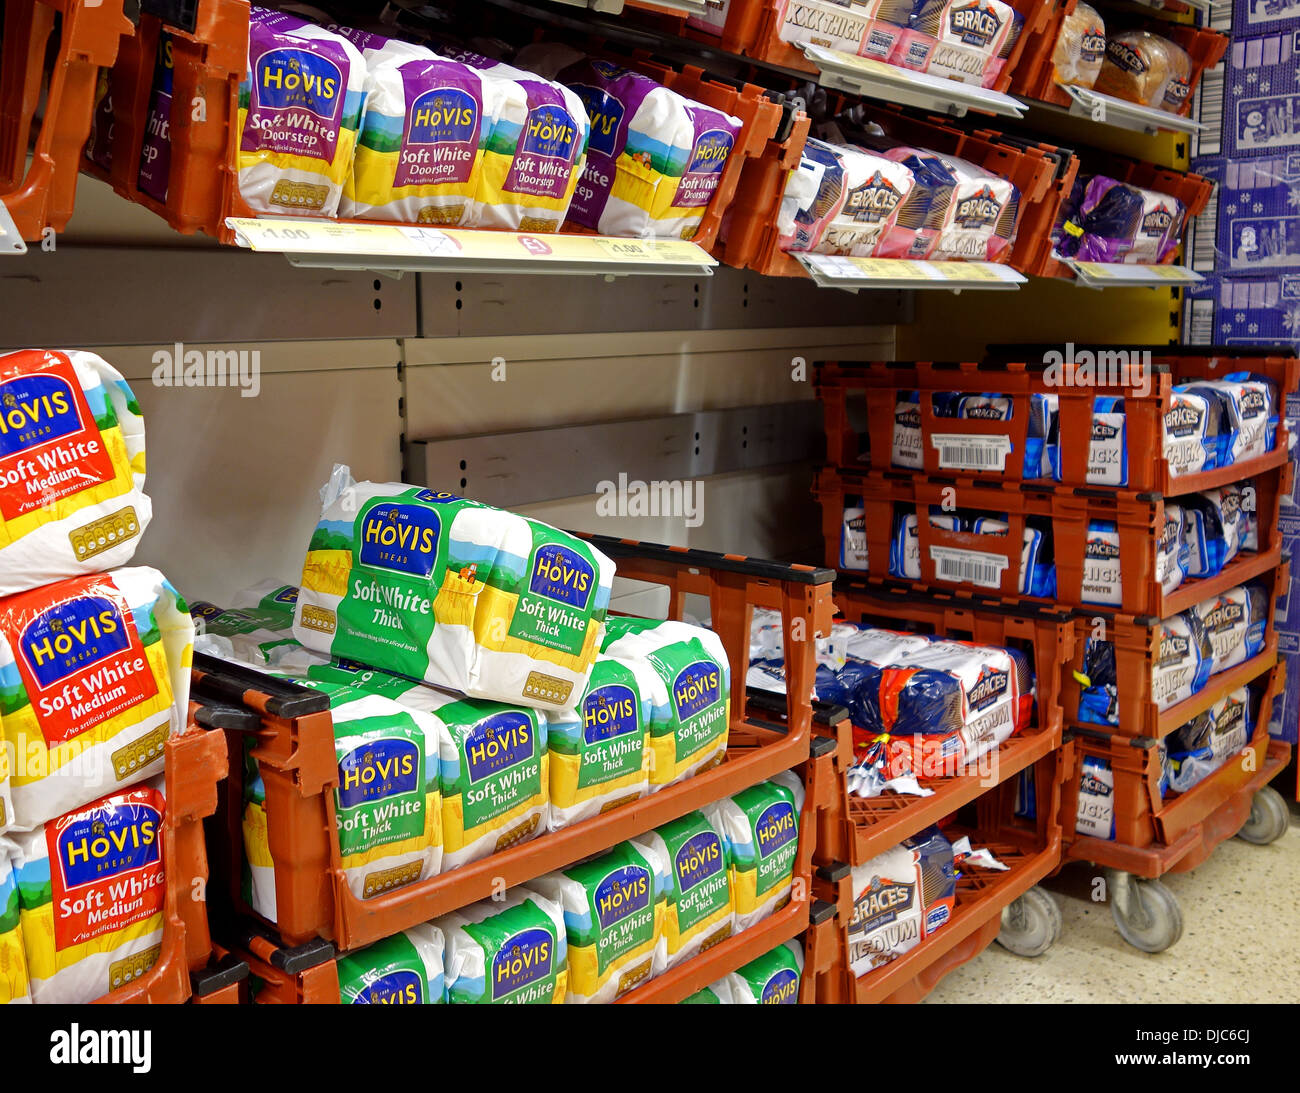 loaves of hovis bread in a supermarket - Stock Image